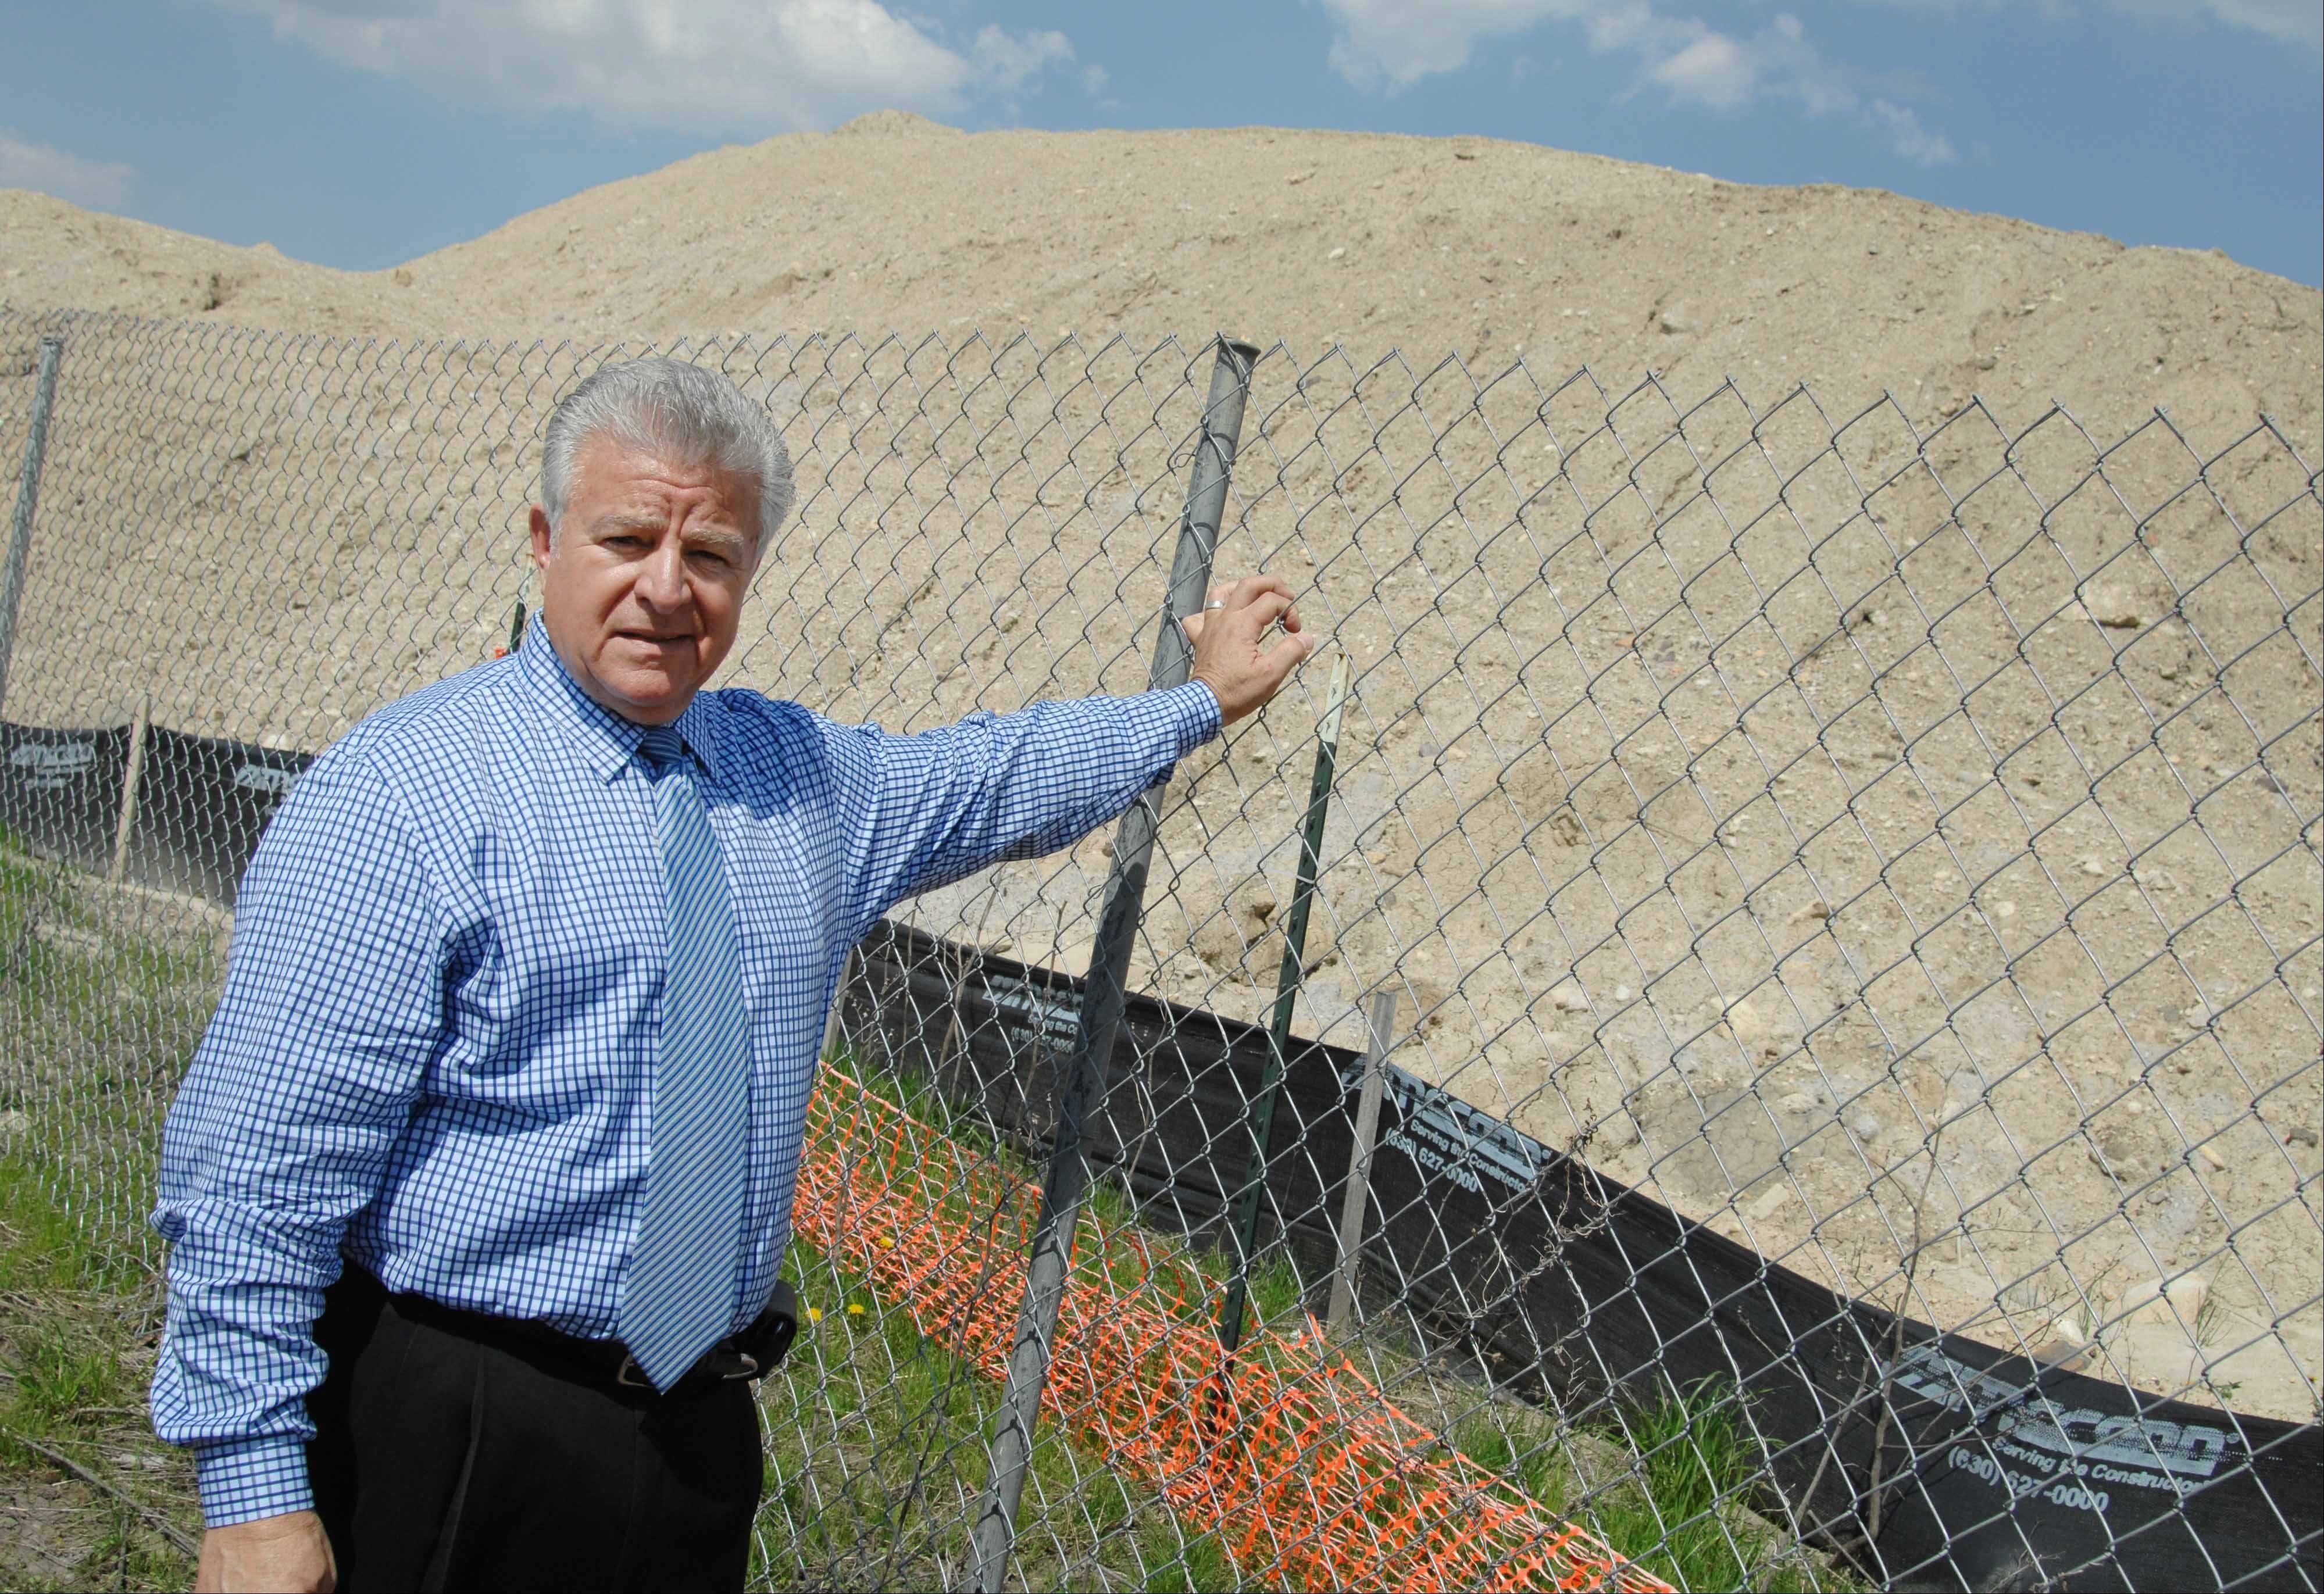 Carol Stream Village President Frank Saverino said Wednesday during his annual State of the Village address that a flood control project planned at Armstrong Park will help mitigate flooding in the area -- but won't solve it completely. A large dirt mound sits at the construction site now, but the project is expected to begin this year.